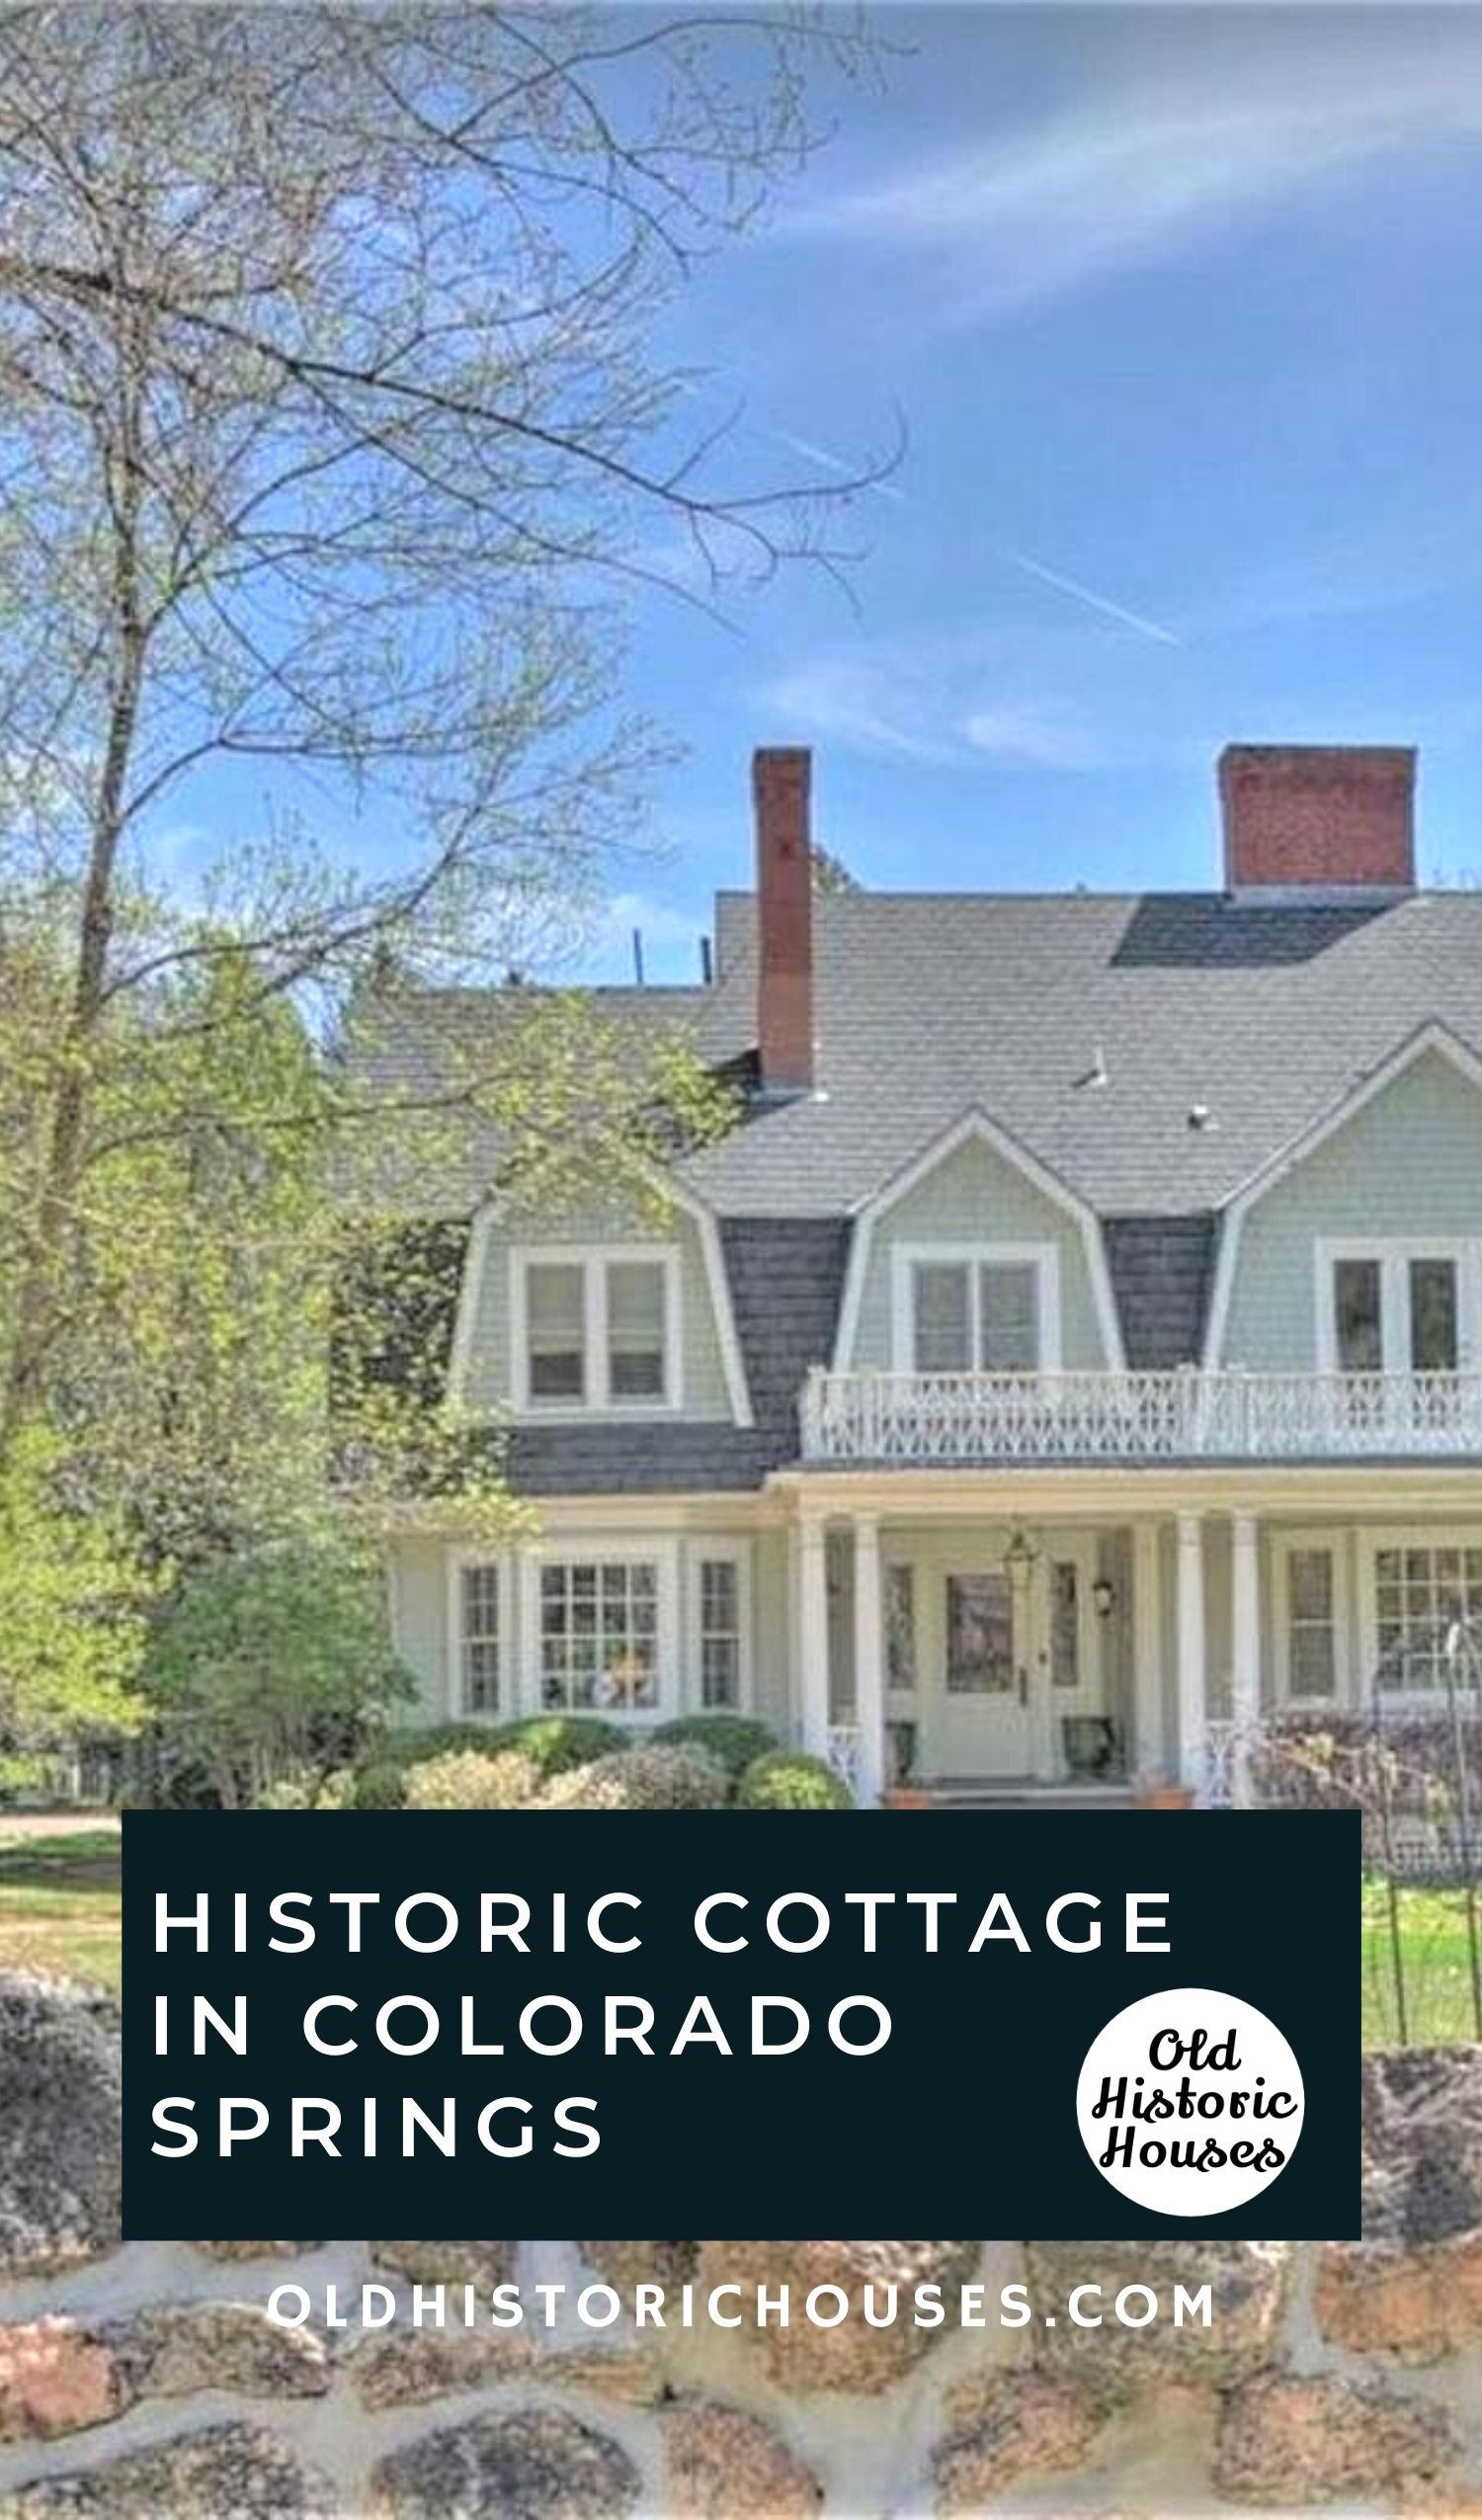 Historic Belles Cottage